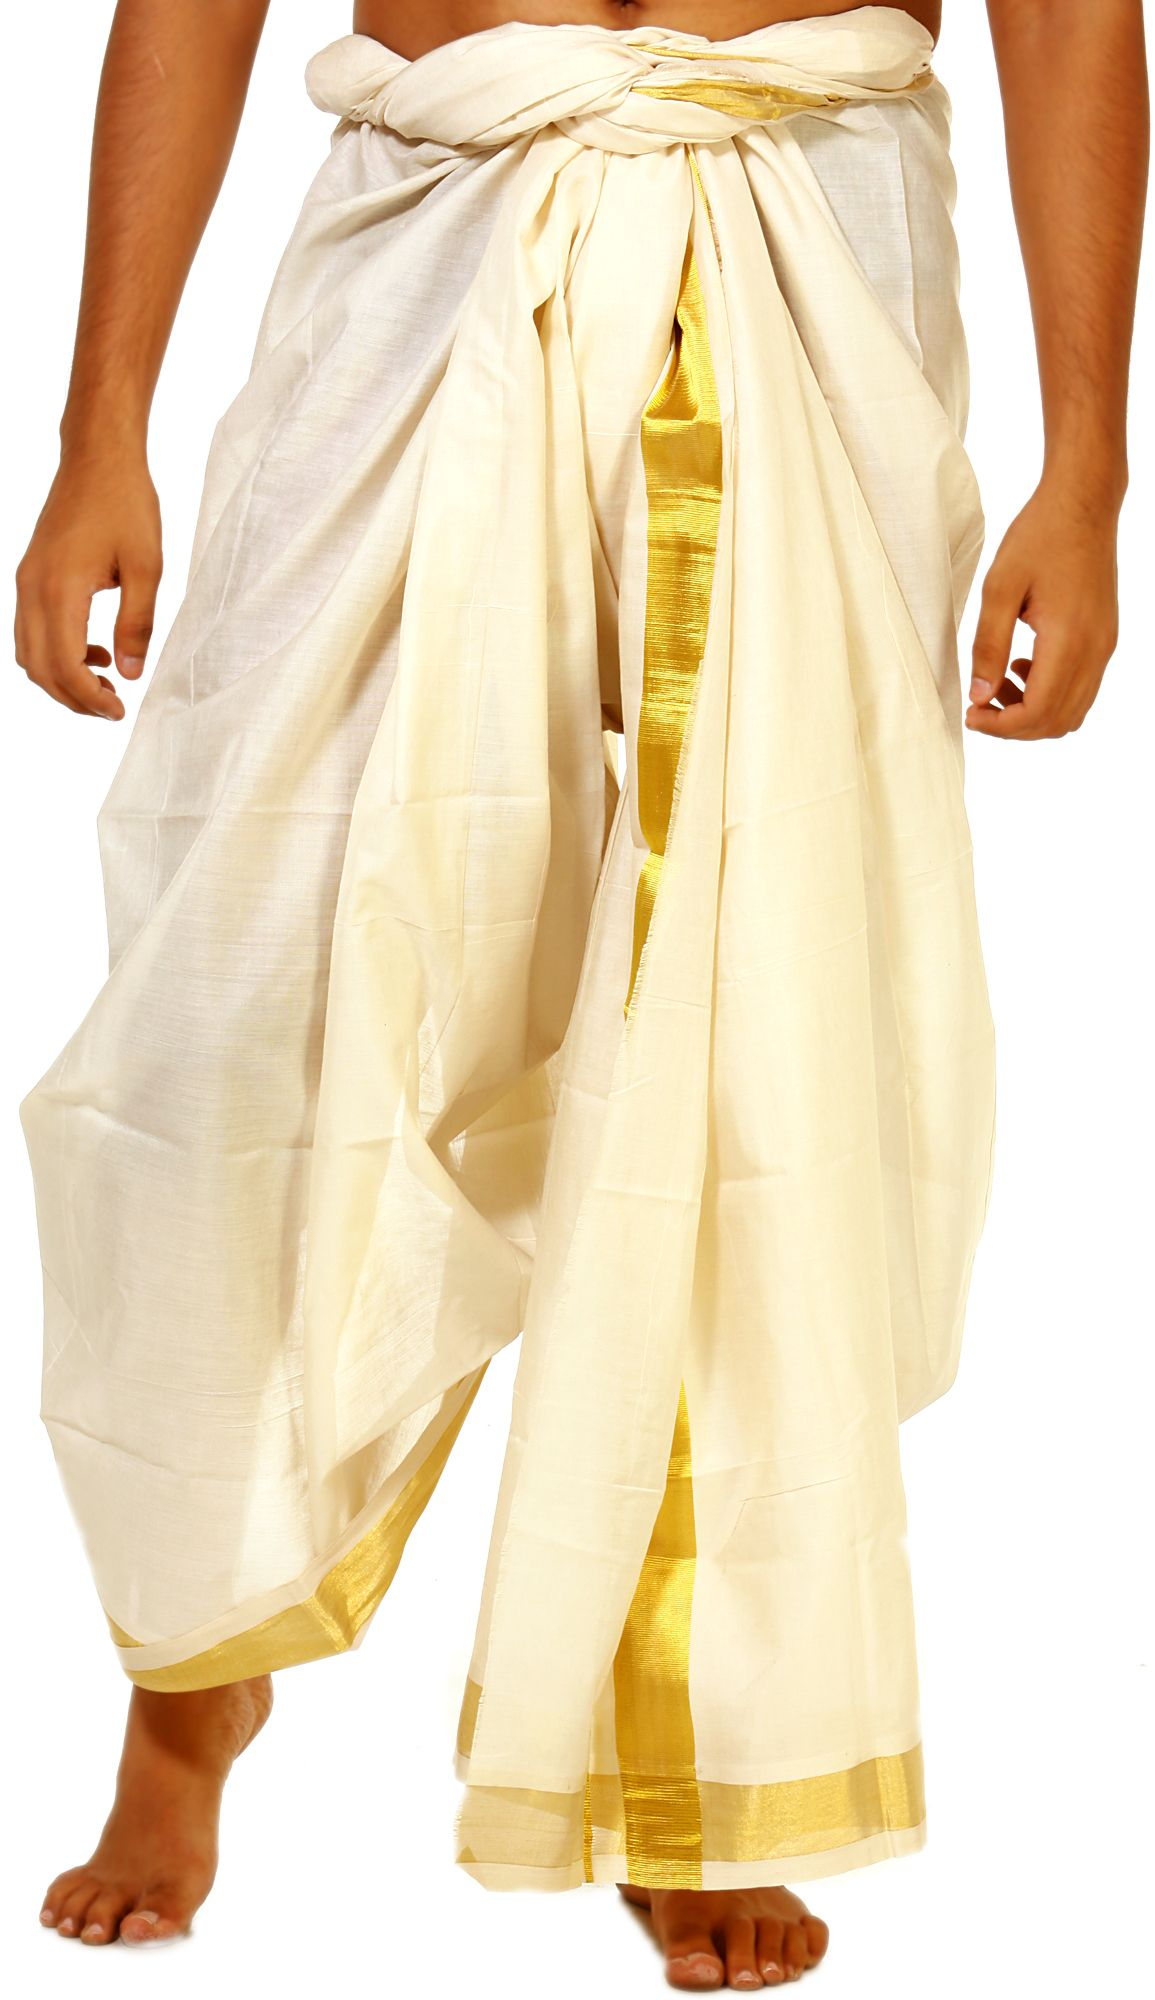 Panche Per Fast Food.Traditional Attire Of Men In India India Clothes Dhoti Indian